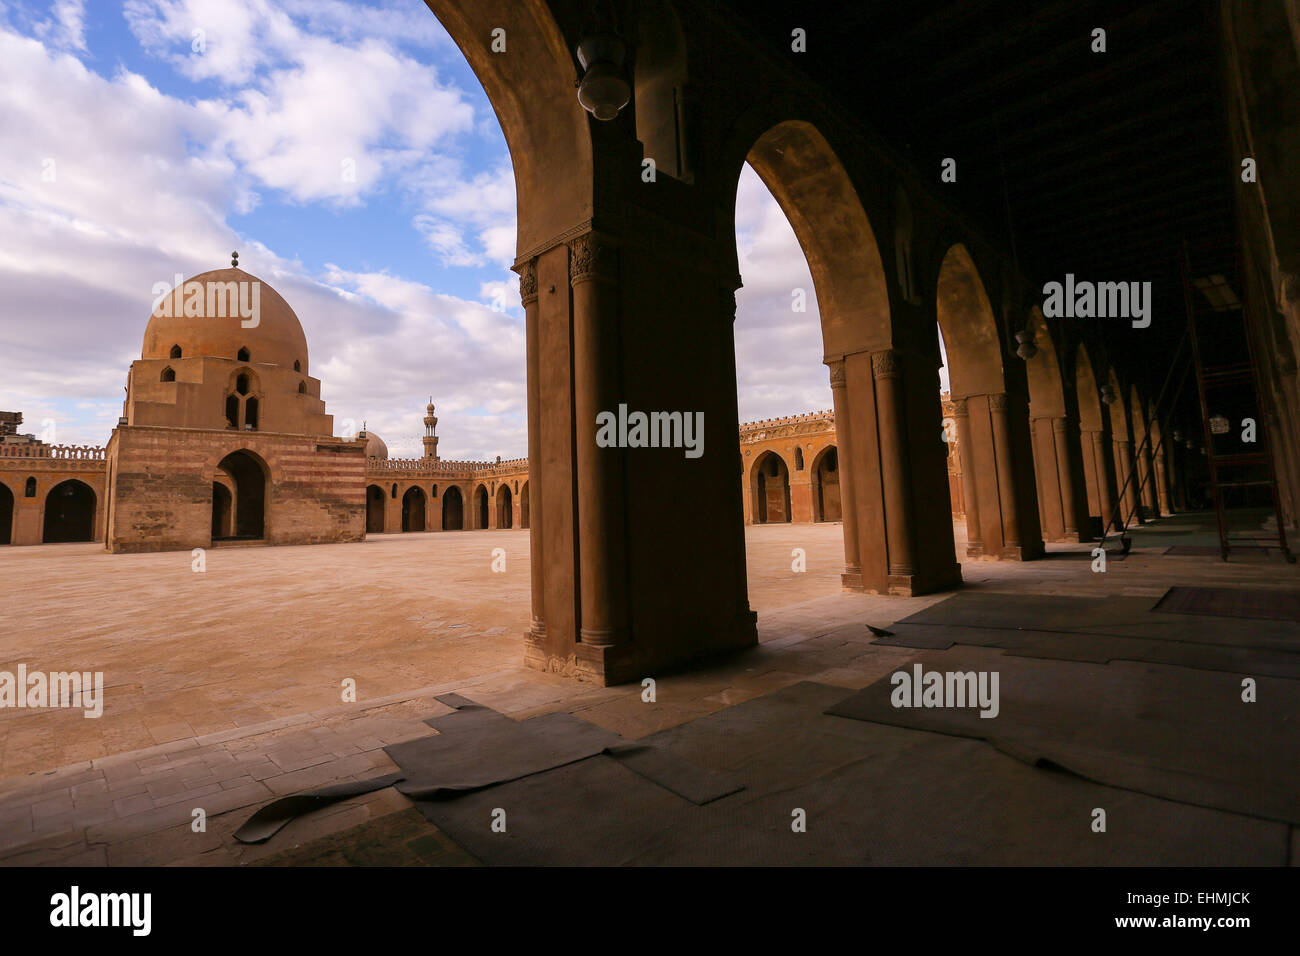 Mosque of Ibn Tulun Cairo, the courtyard, founded 879 AD - Stock Image